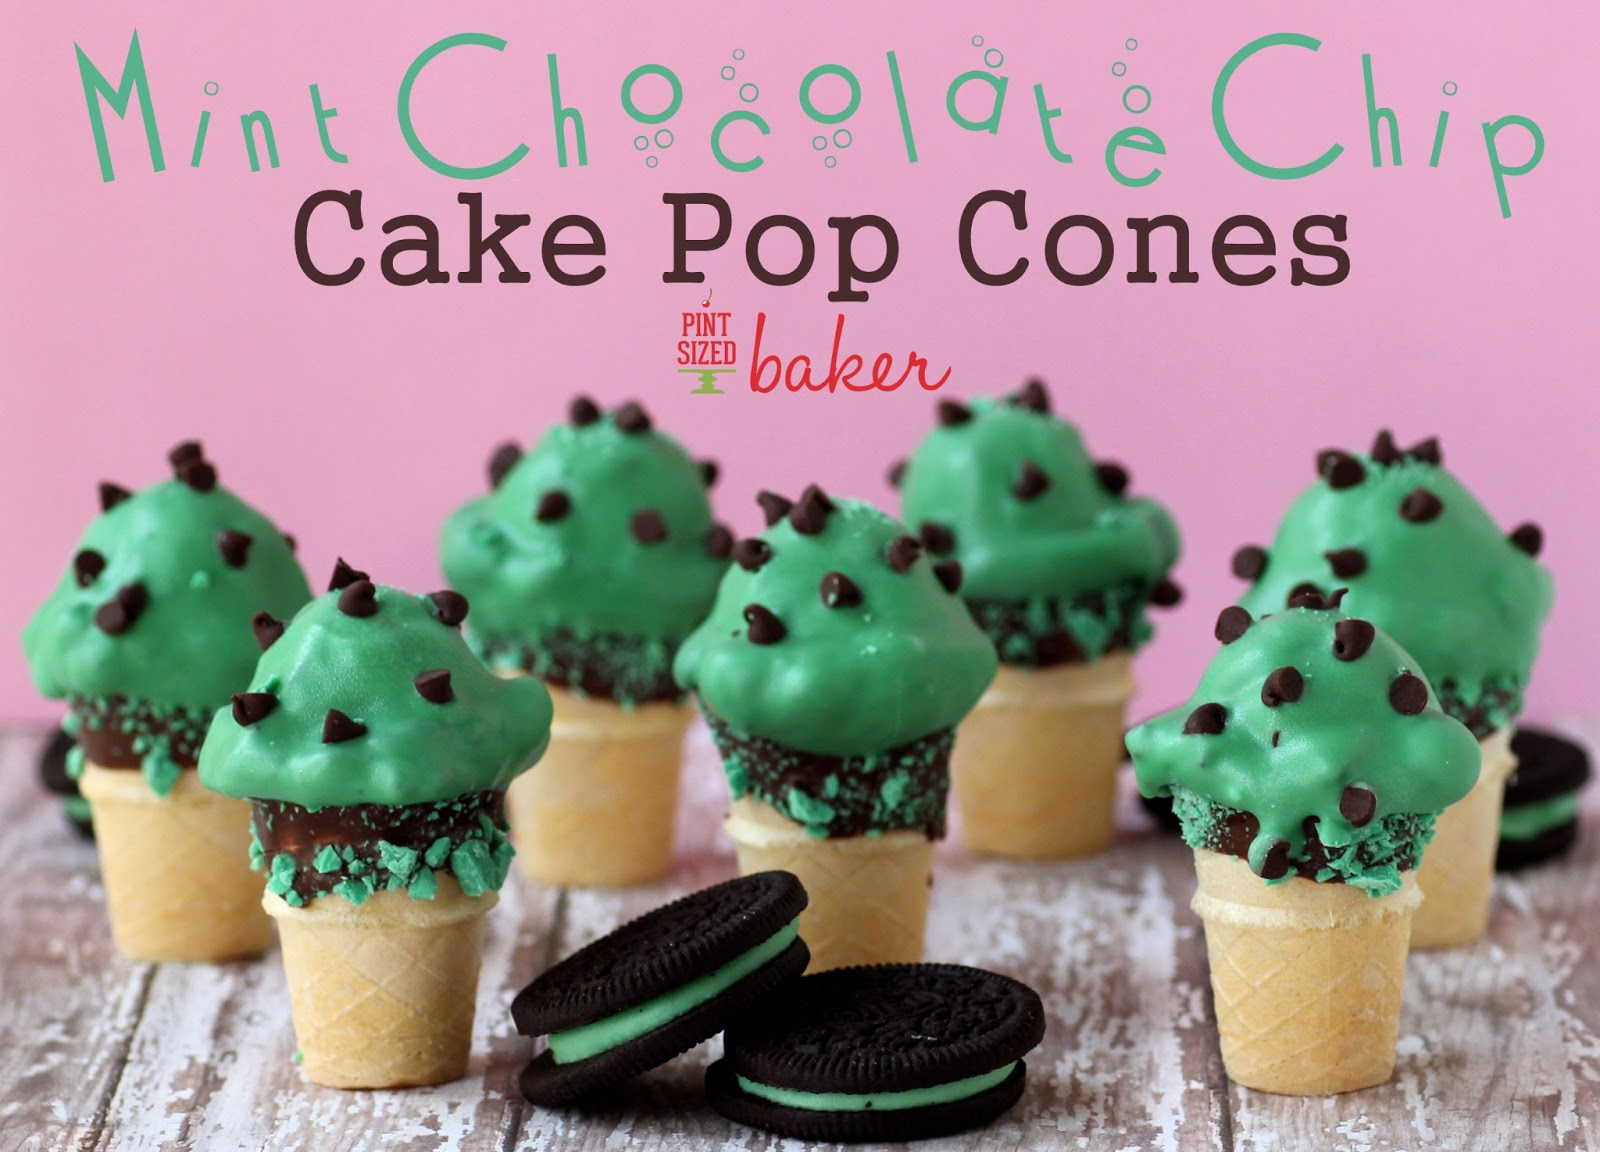 Mint Chocolate Chip Cake Pop Cones - Pint Sized Baker